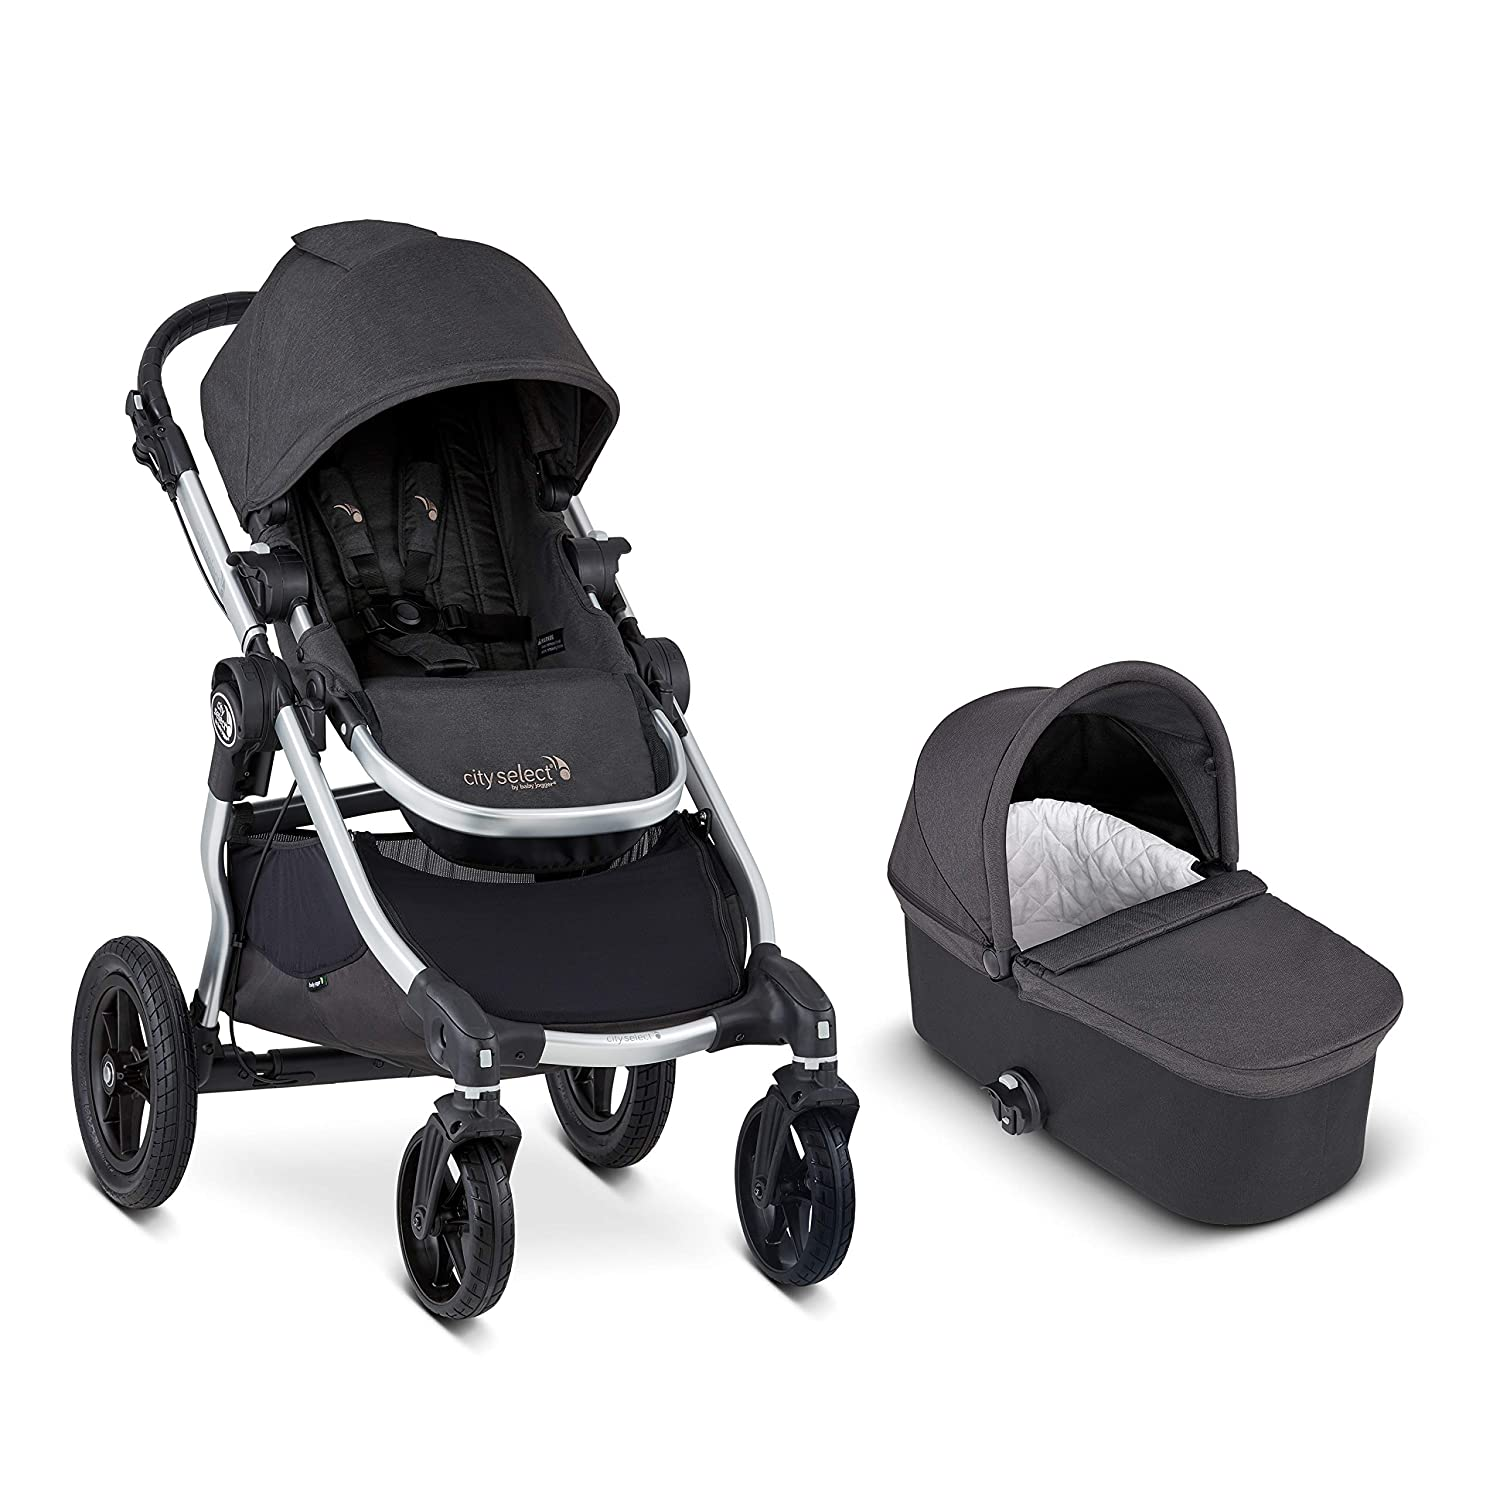 Baby Jogger City Select Stroller and Deluxe Pram